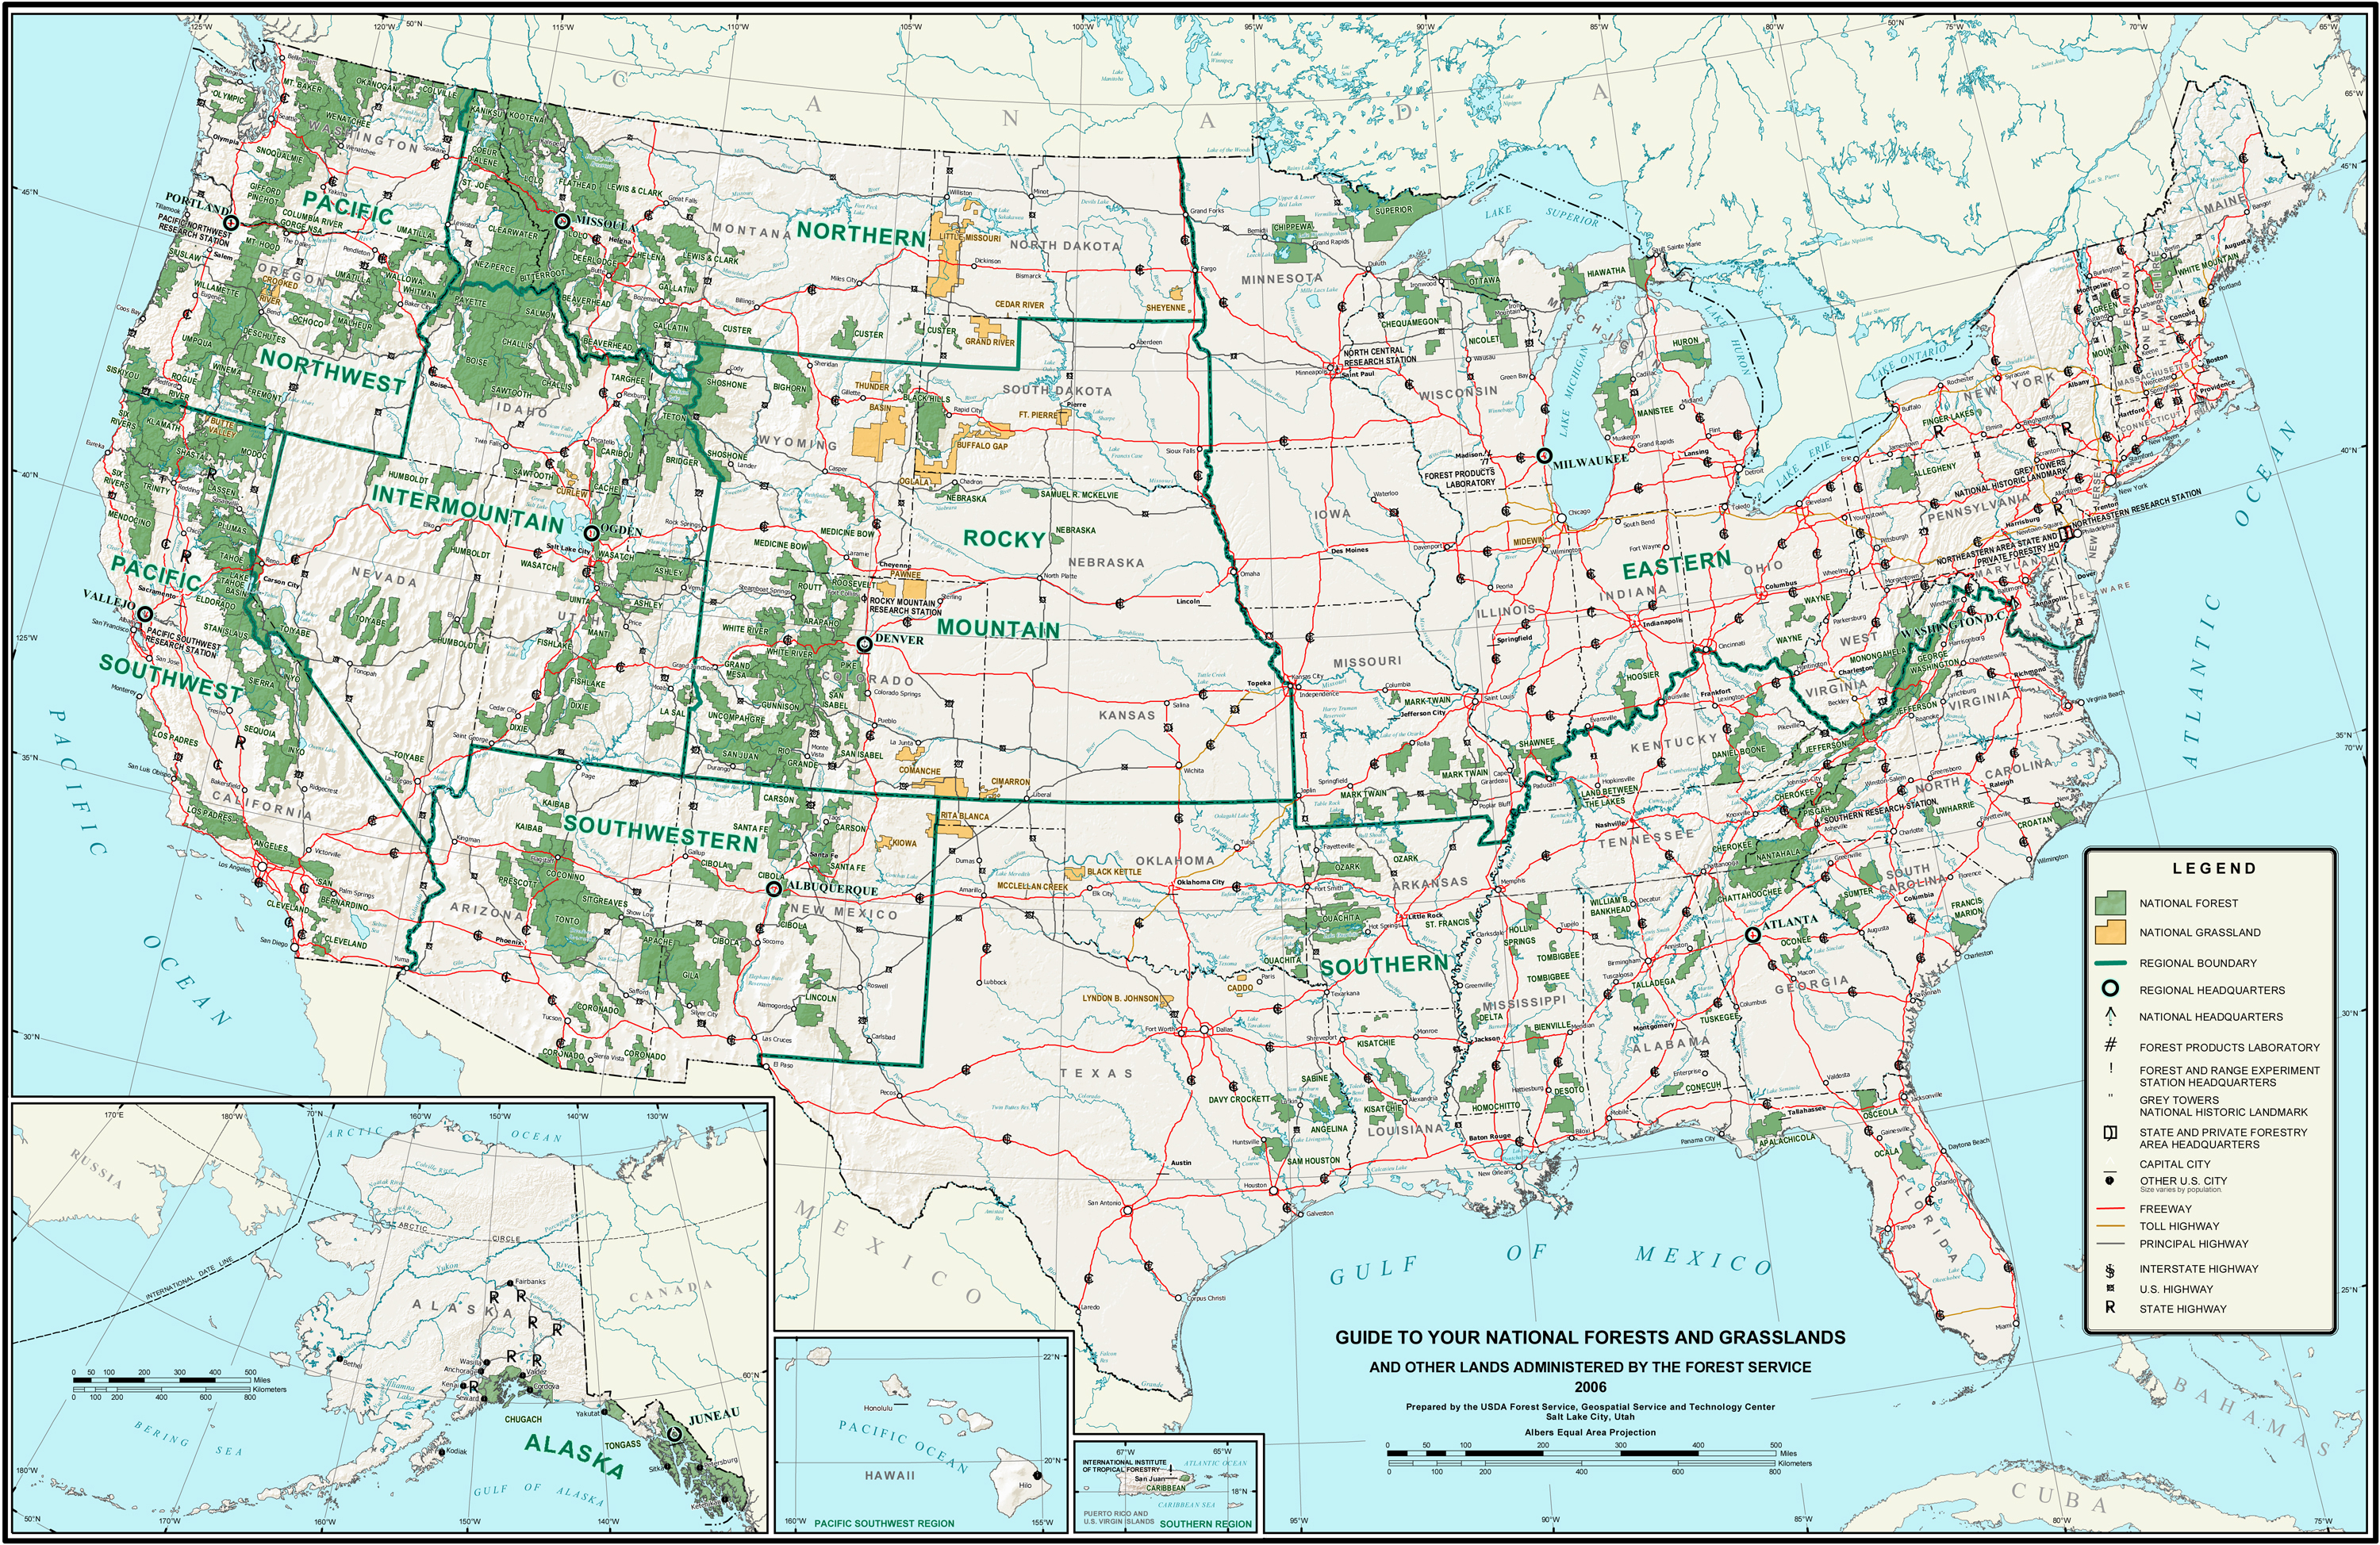 List Of U.s. National Forests - Wikipedia - National Forests In Florida Map